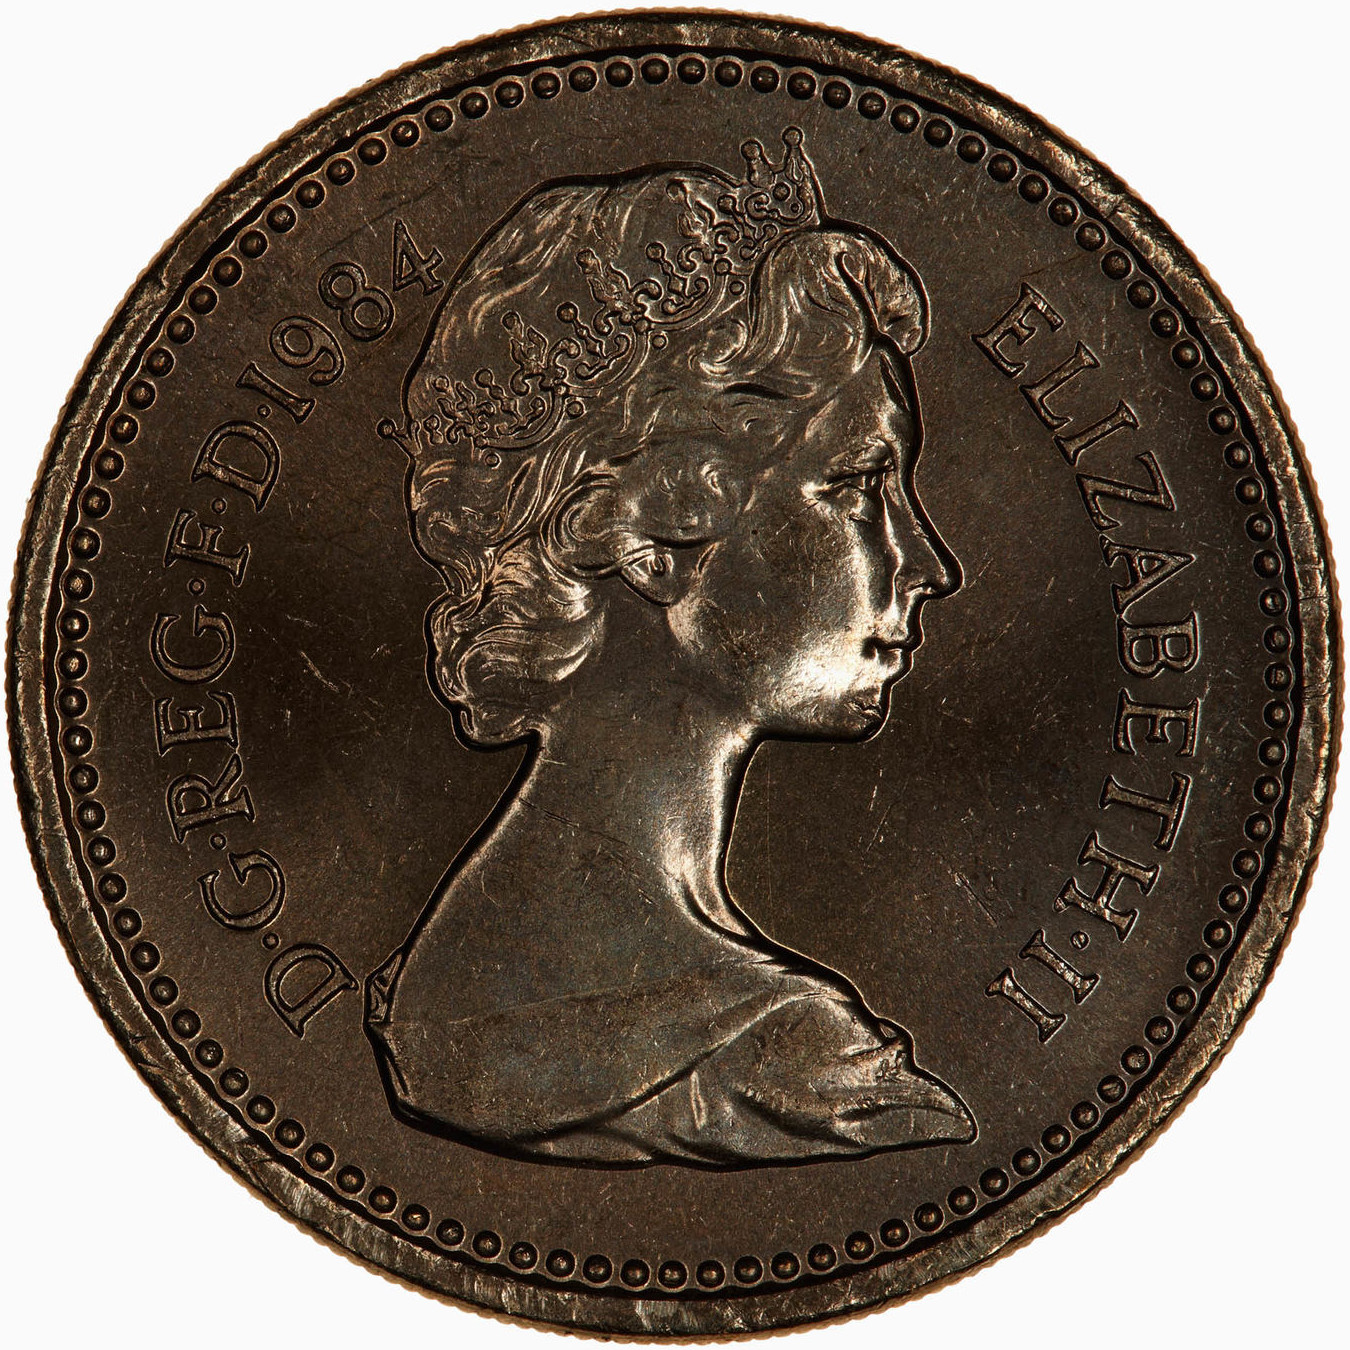 One Pound 1984: Photo Coin - 1 Pound, Elizabeth II, Great Britain, 1984